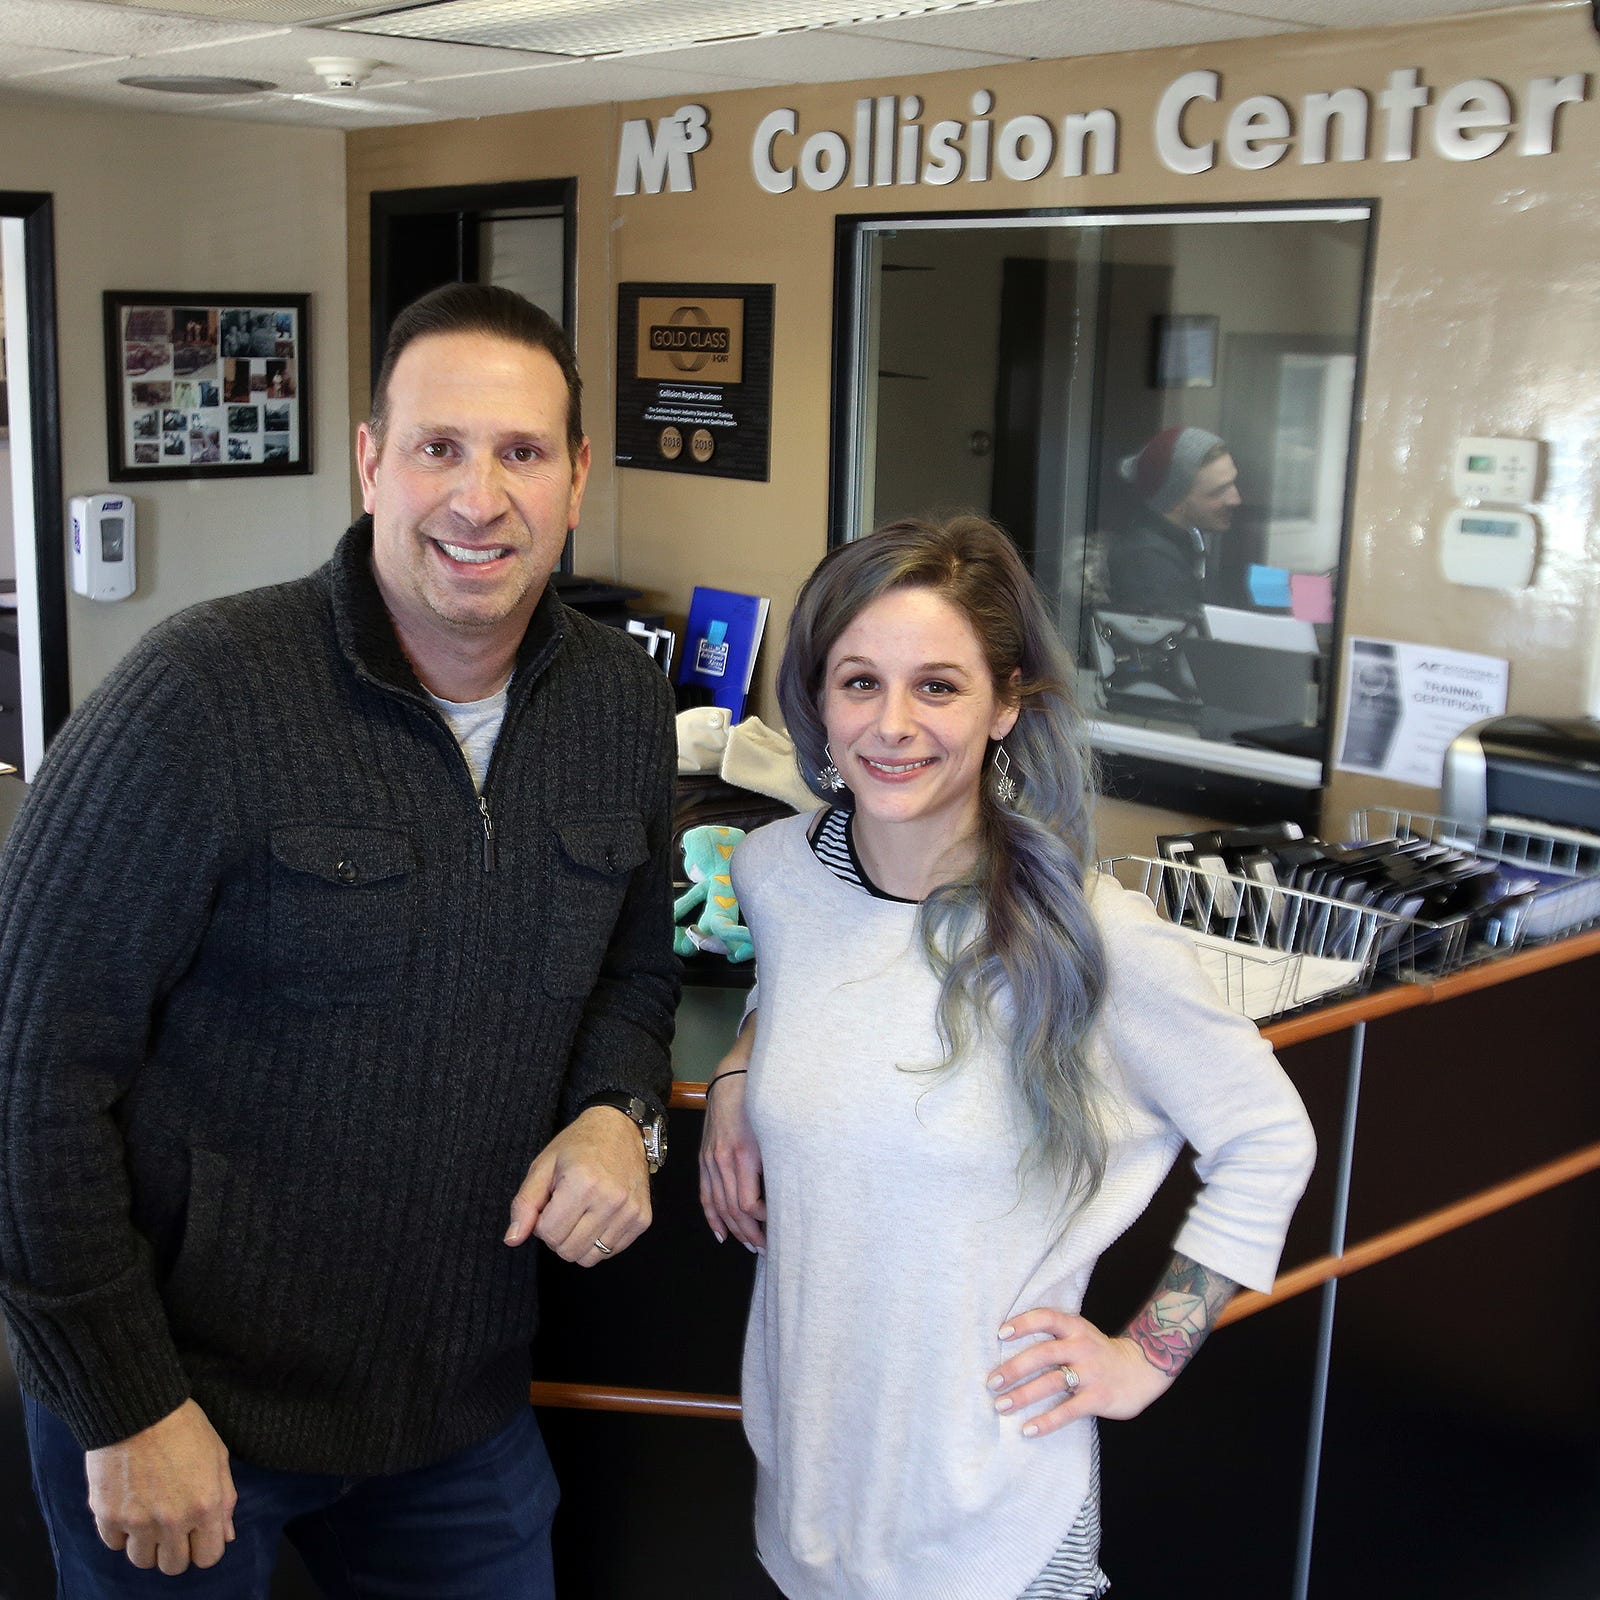 M3 Collision Center: Brothers build body shop one crash at a time